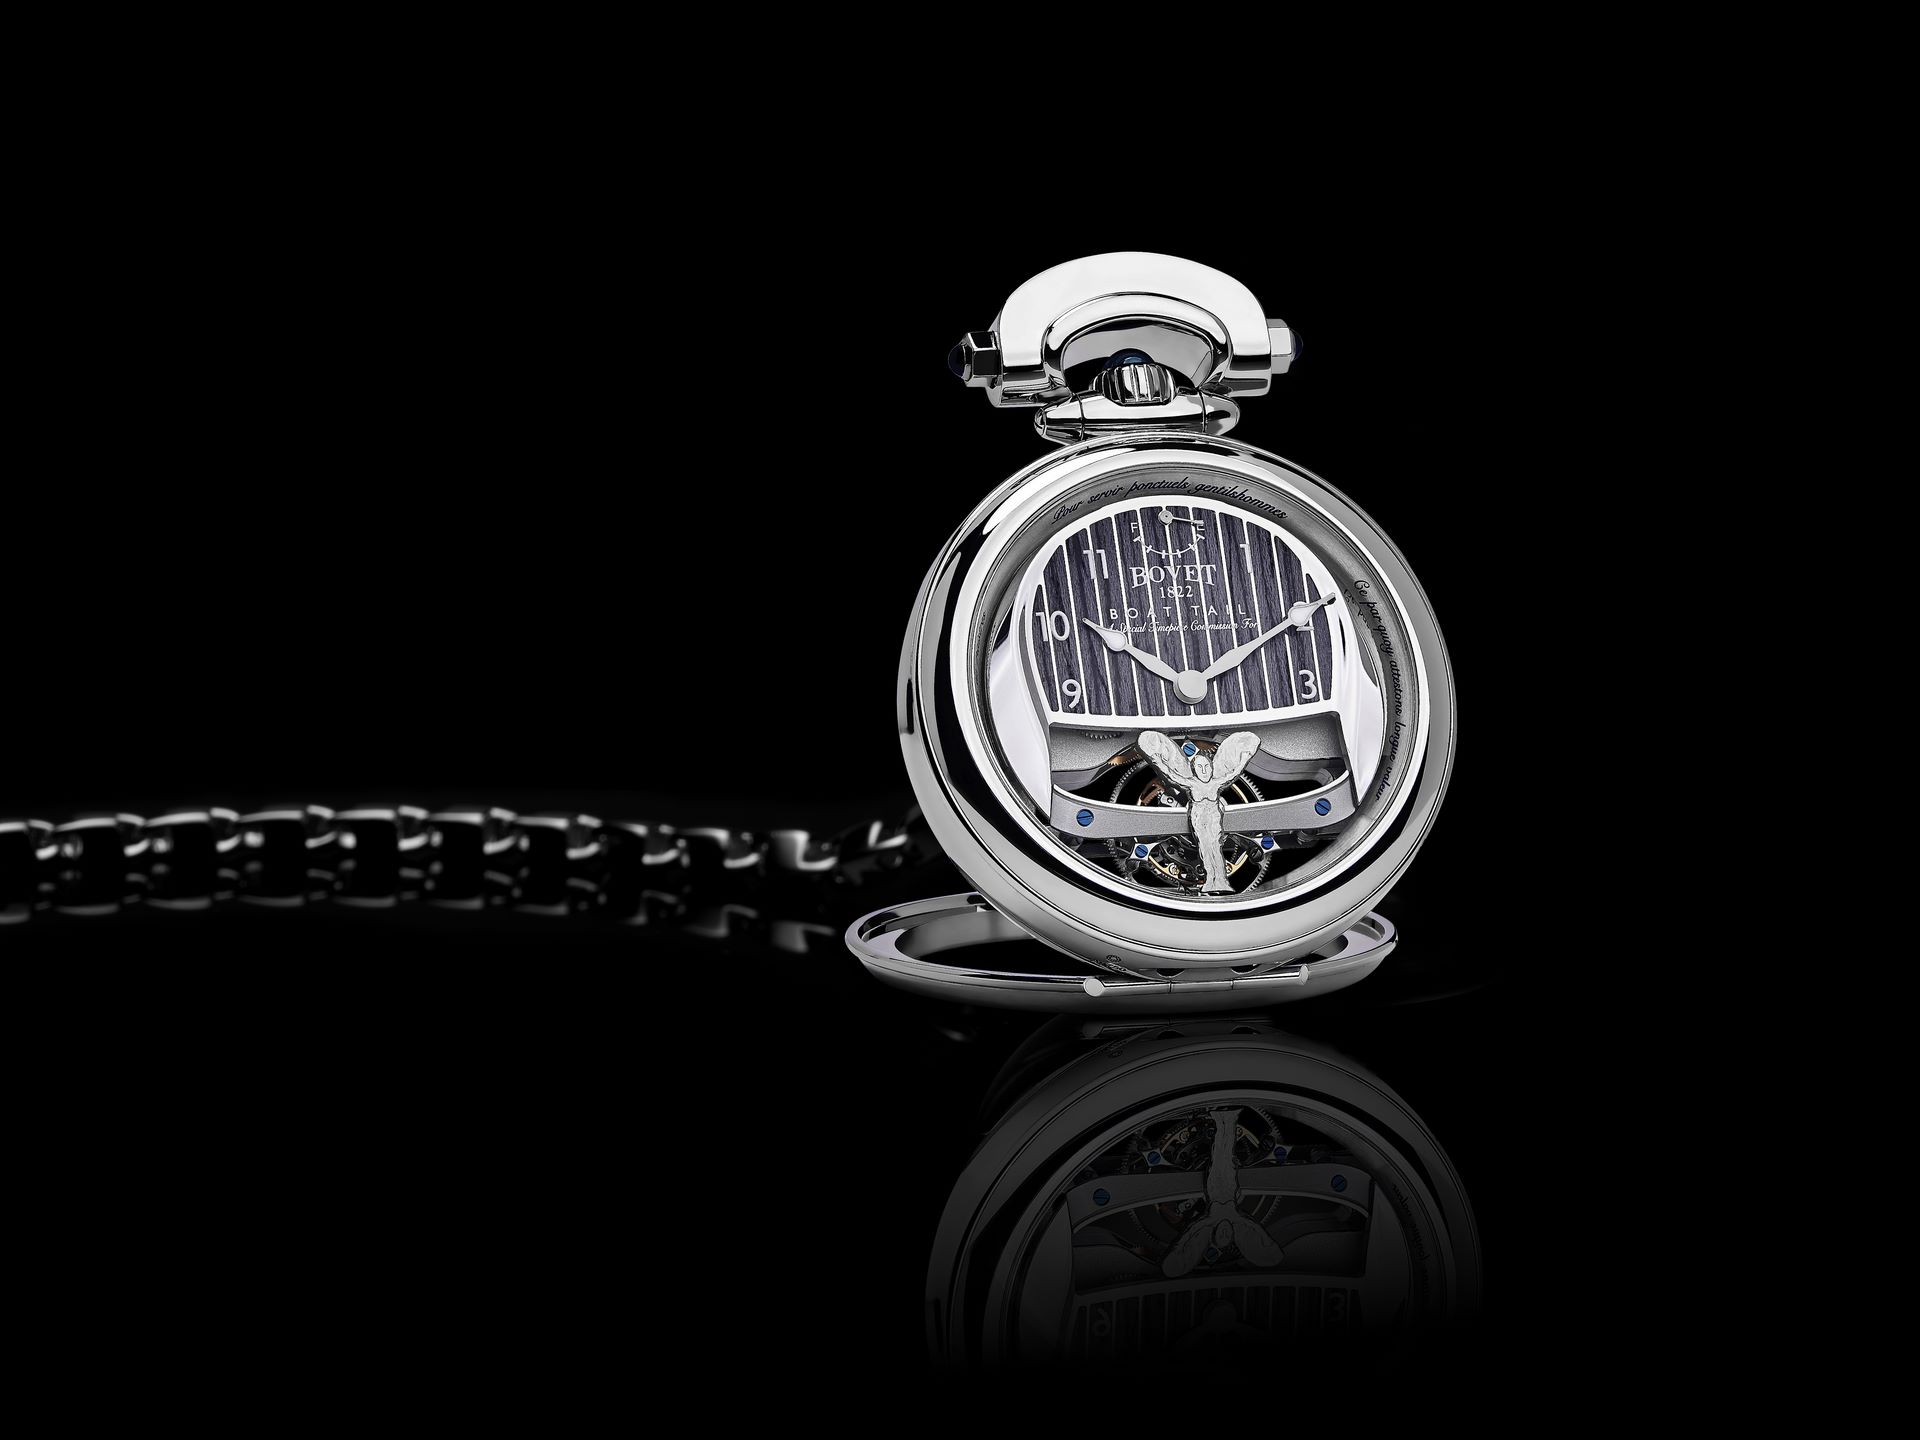 Rolls-Royce-Boat-Tail-Bovet-1822-Watches-4